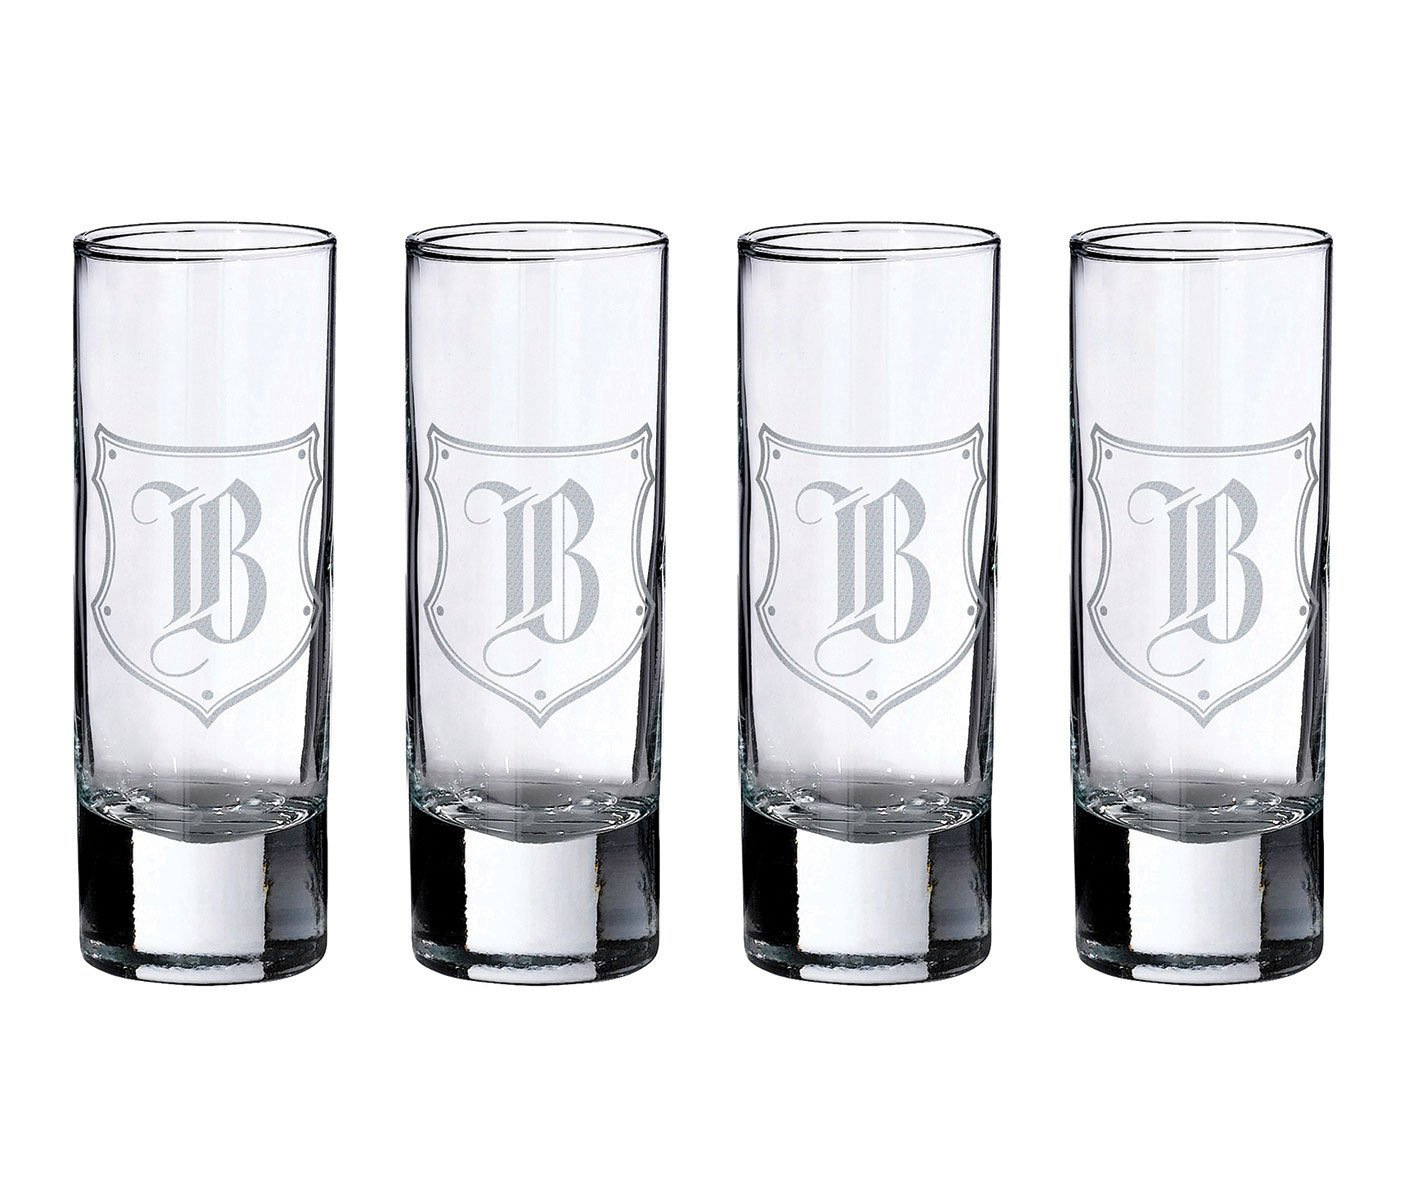 Lillian Rose Personalized Set of 4 Monogram Letter A Shot Glasses G152 A